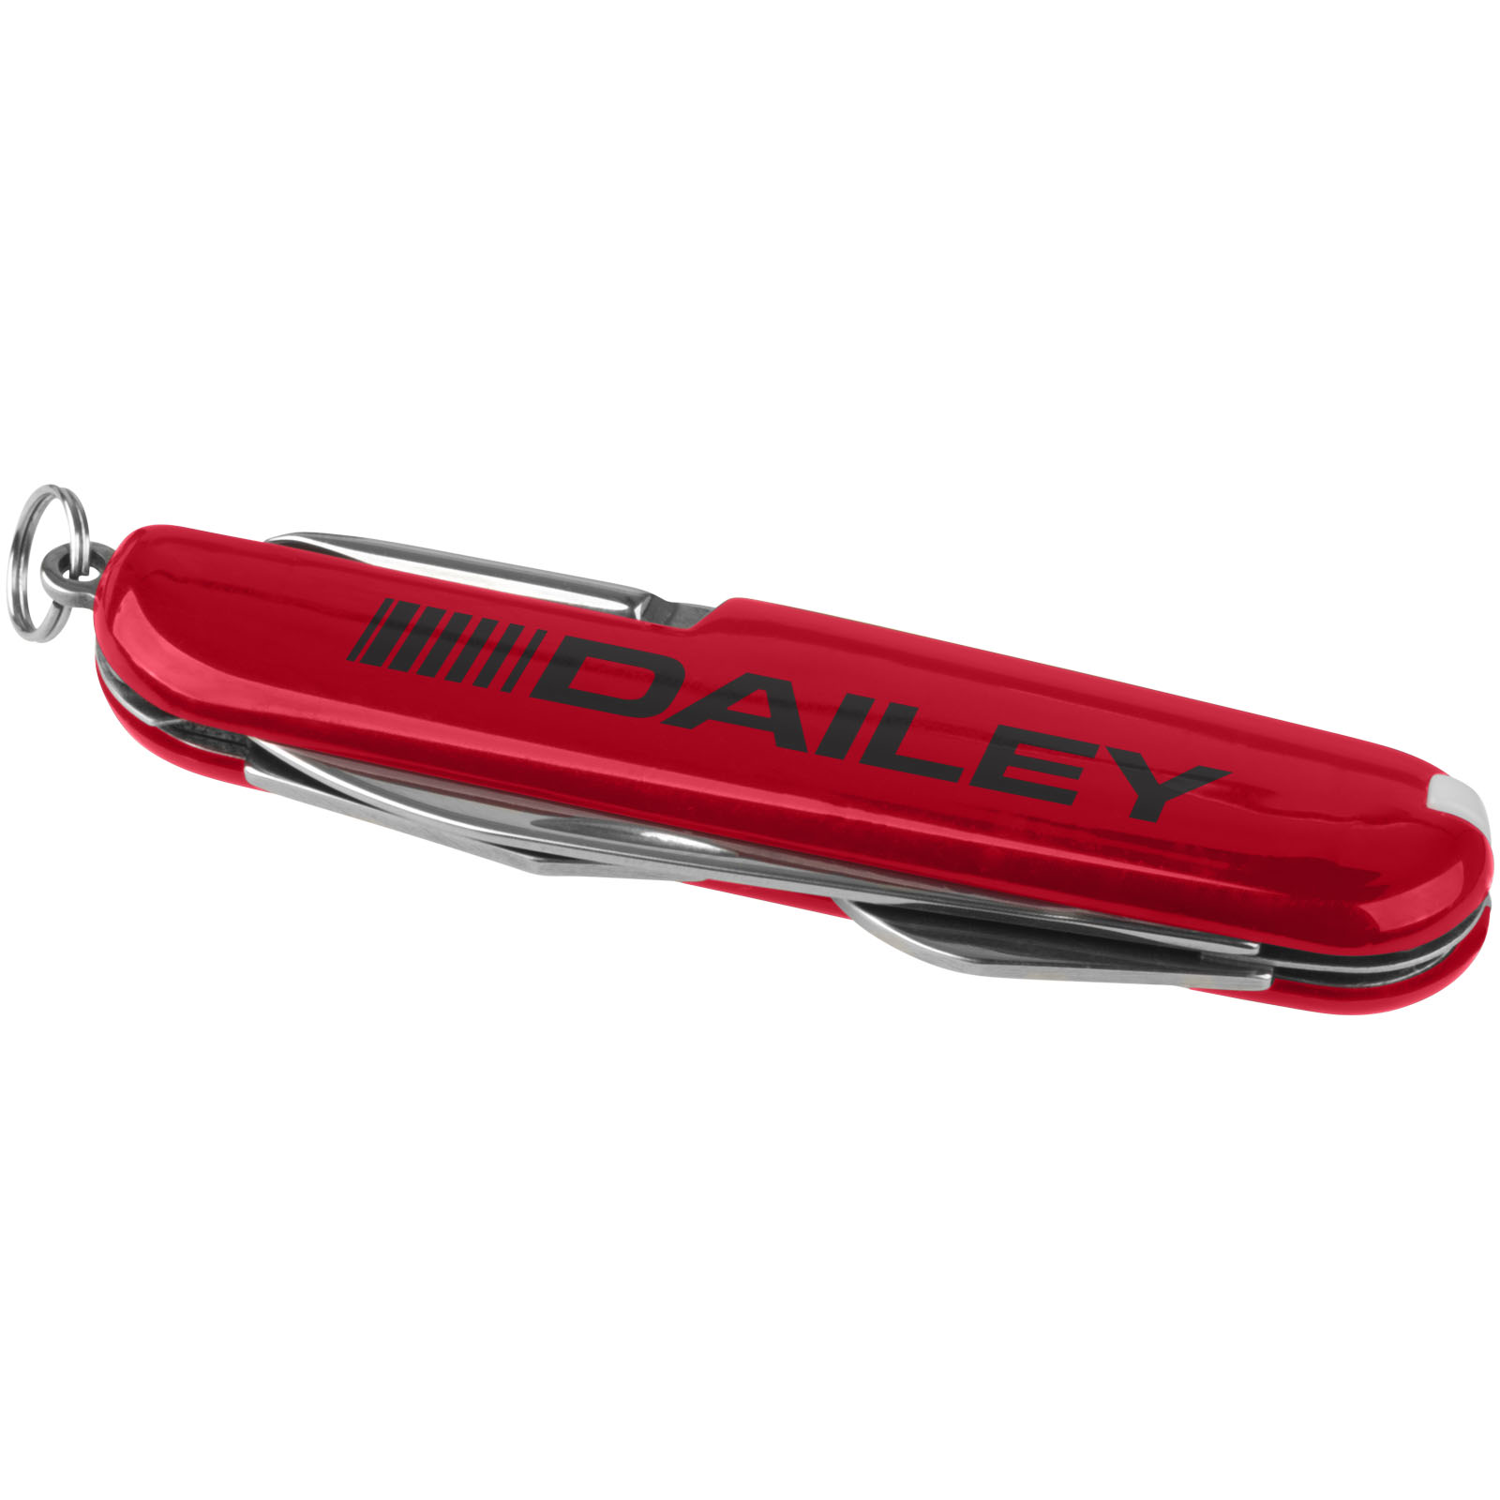 Emmy 9-Function Pocket Knife With Keychain